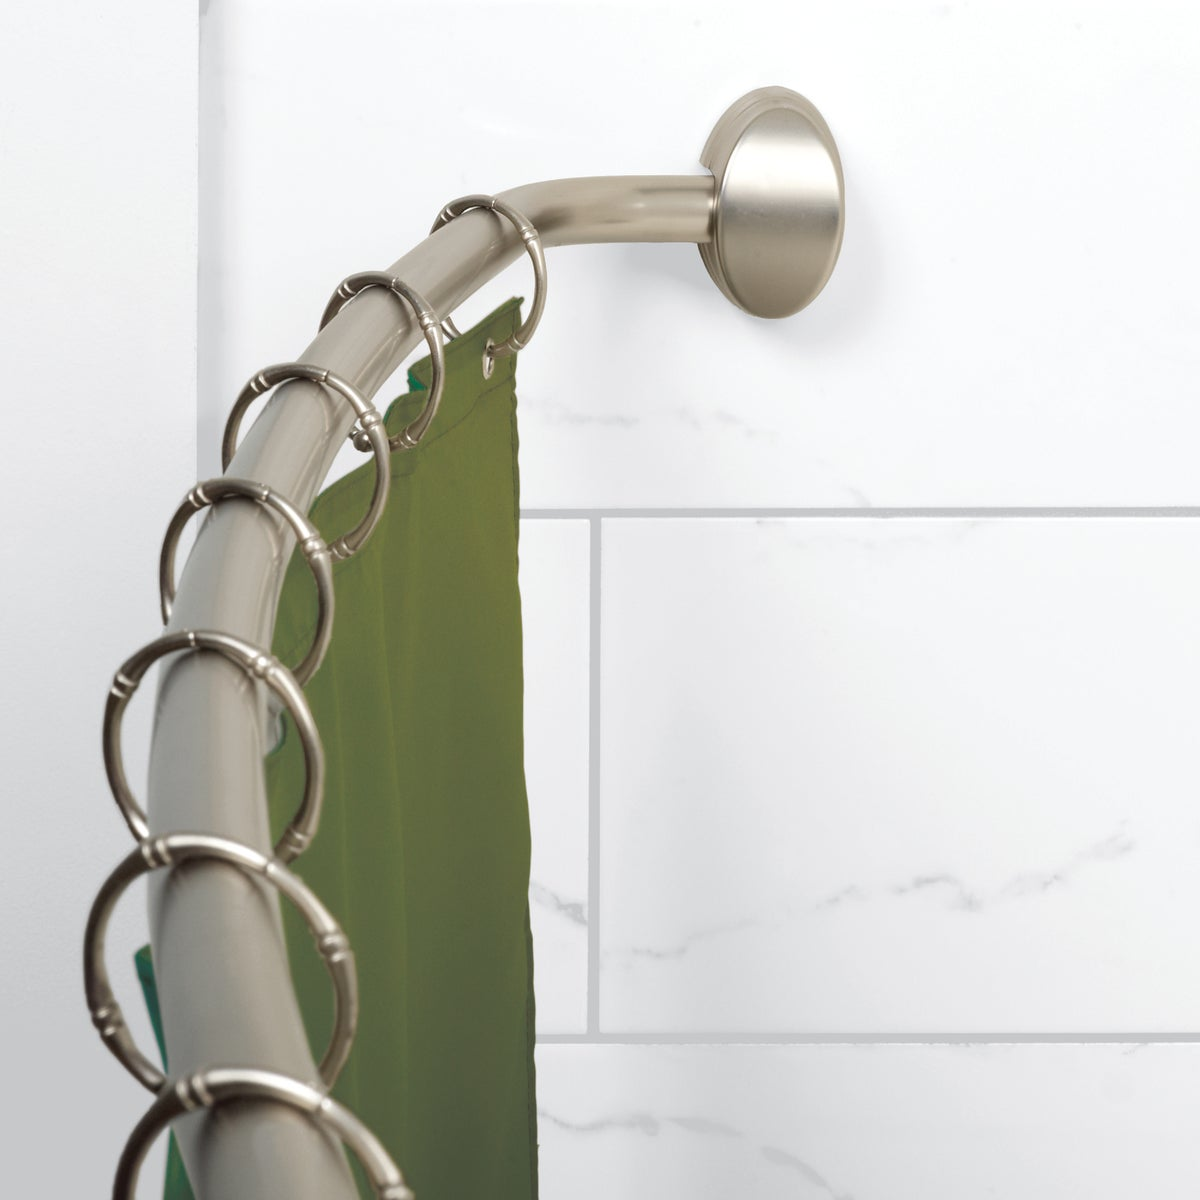 BN CURVED ADJ SHOWER ROD